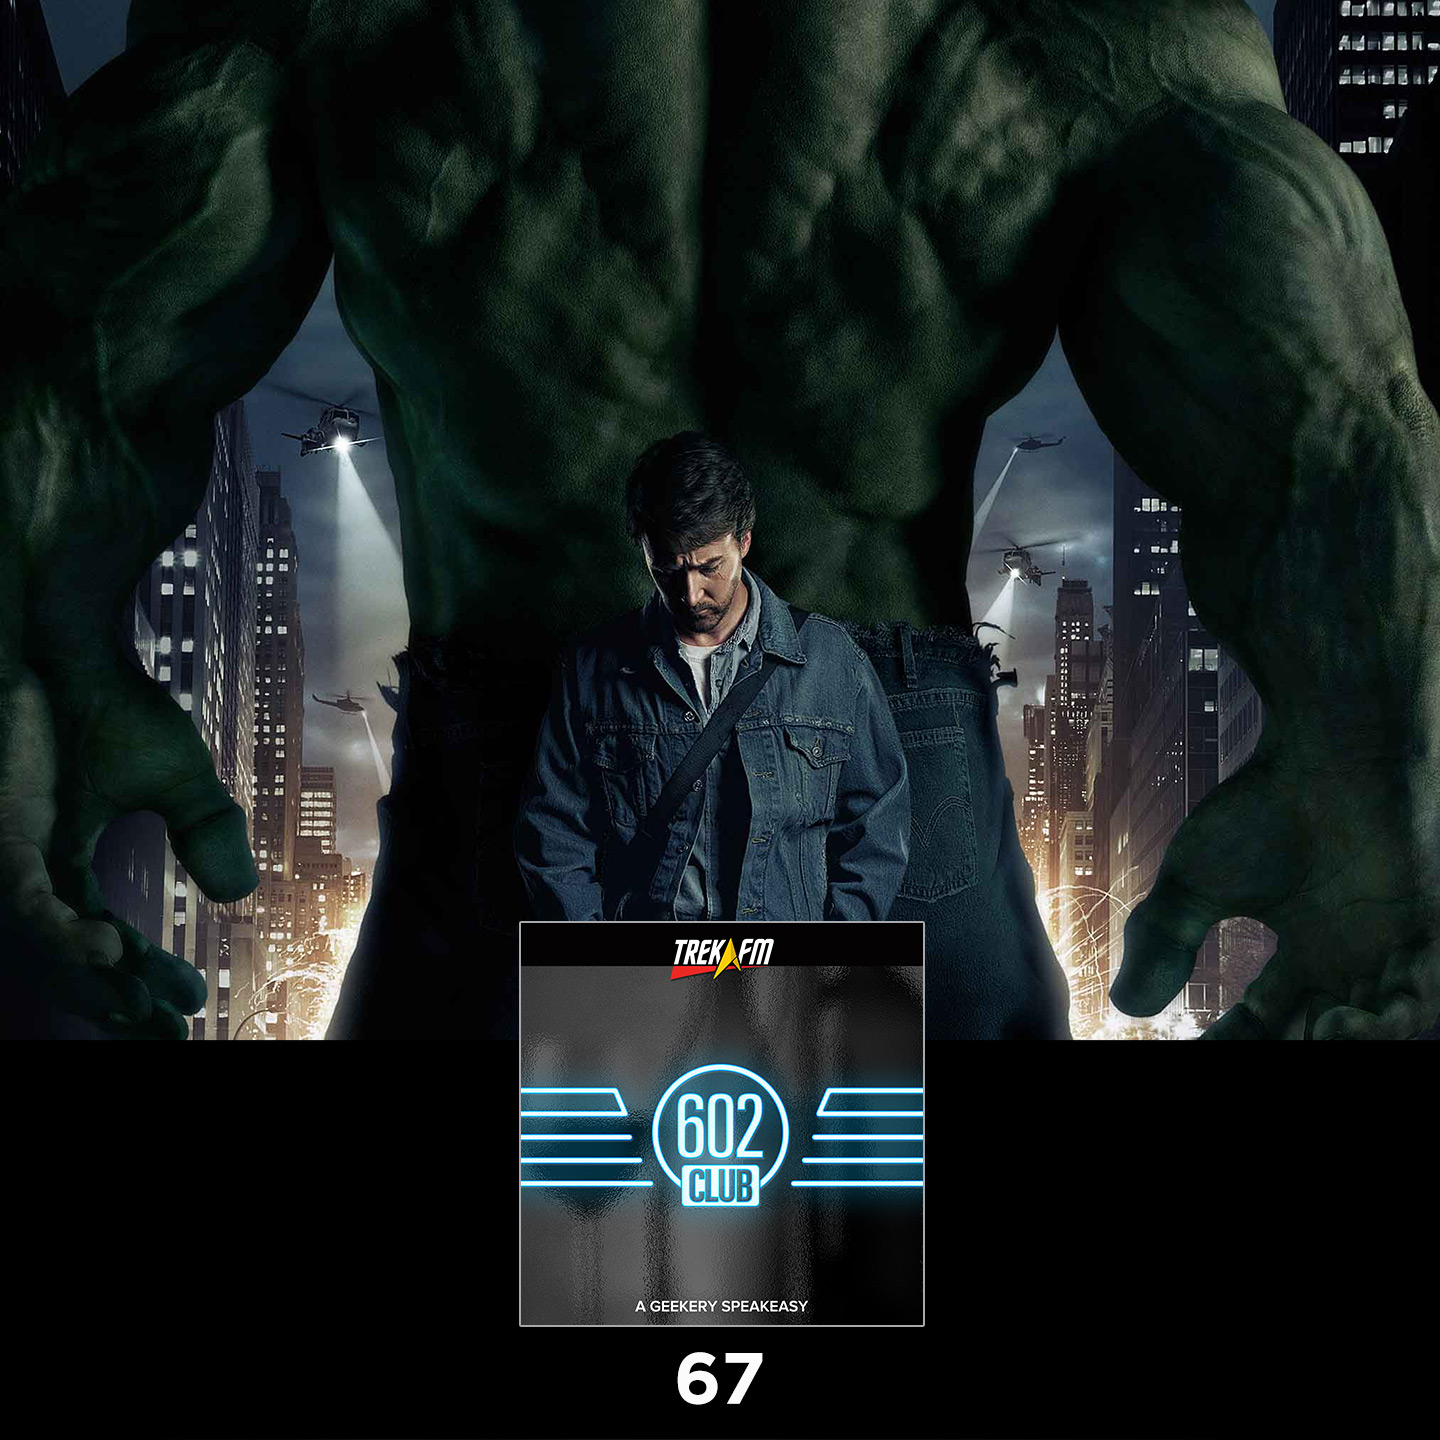 67: Marvel's King Kong